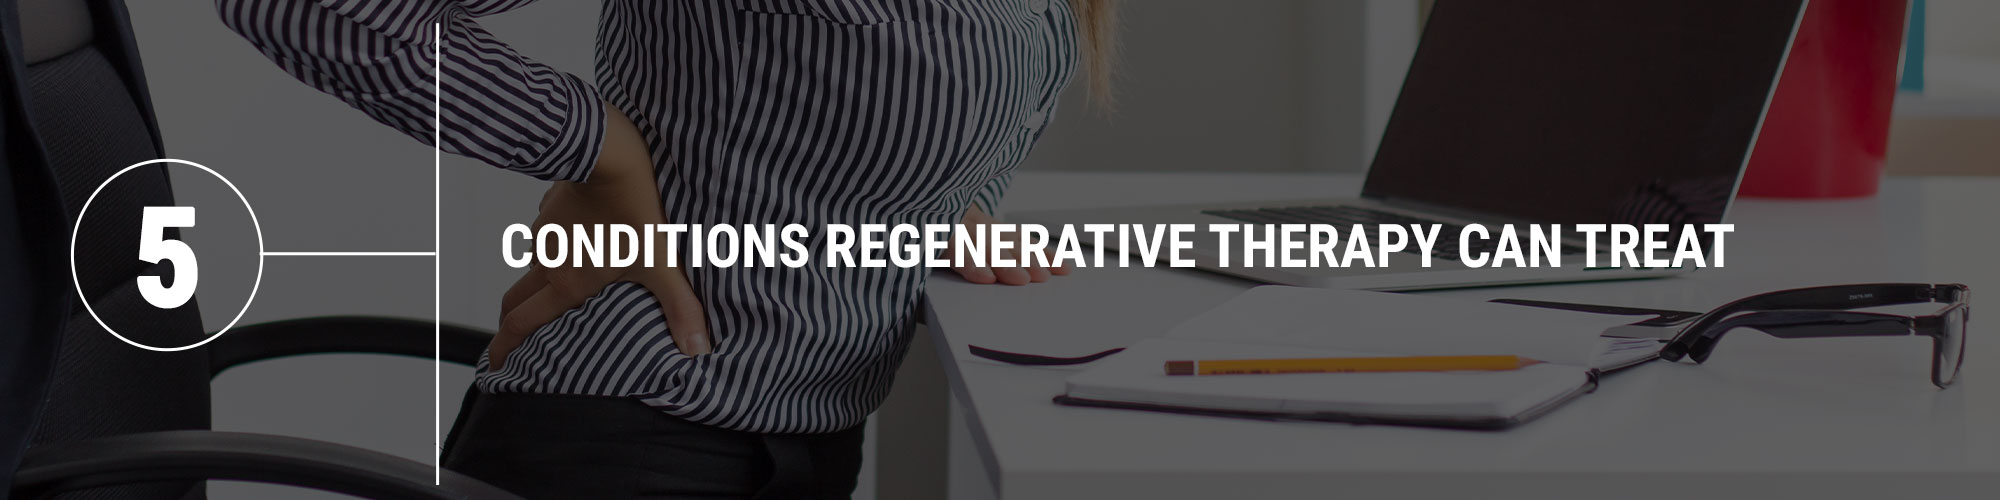 conditions regenerative therapy can treat